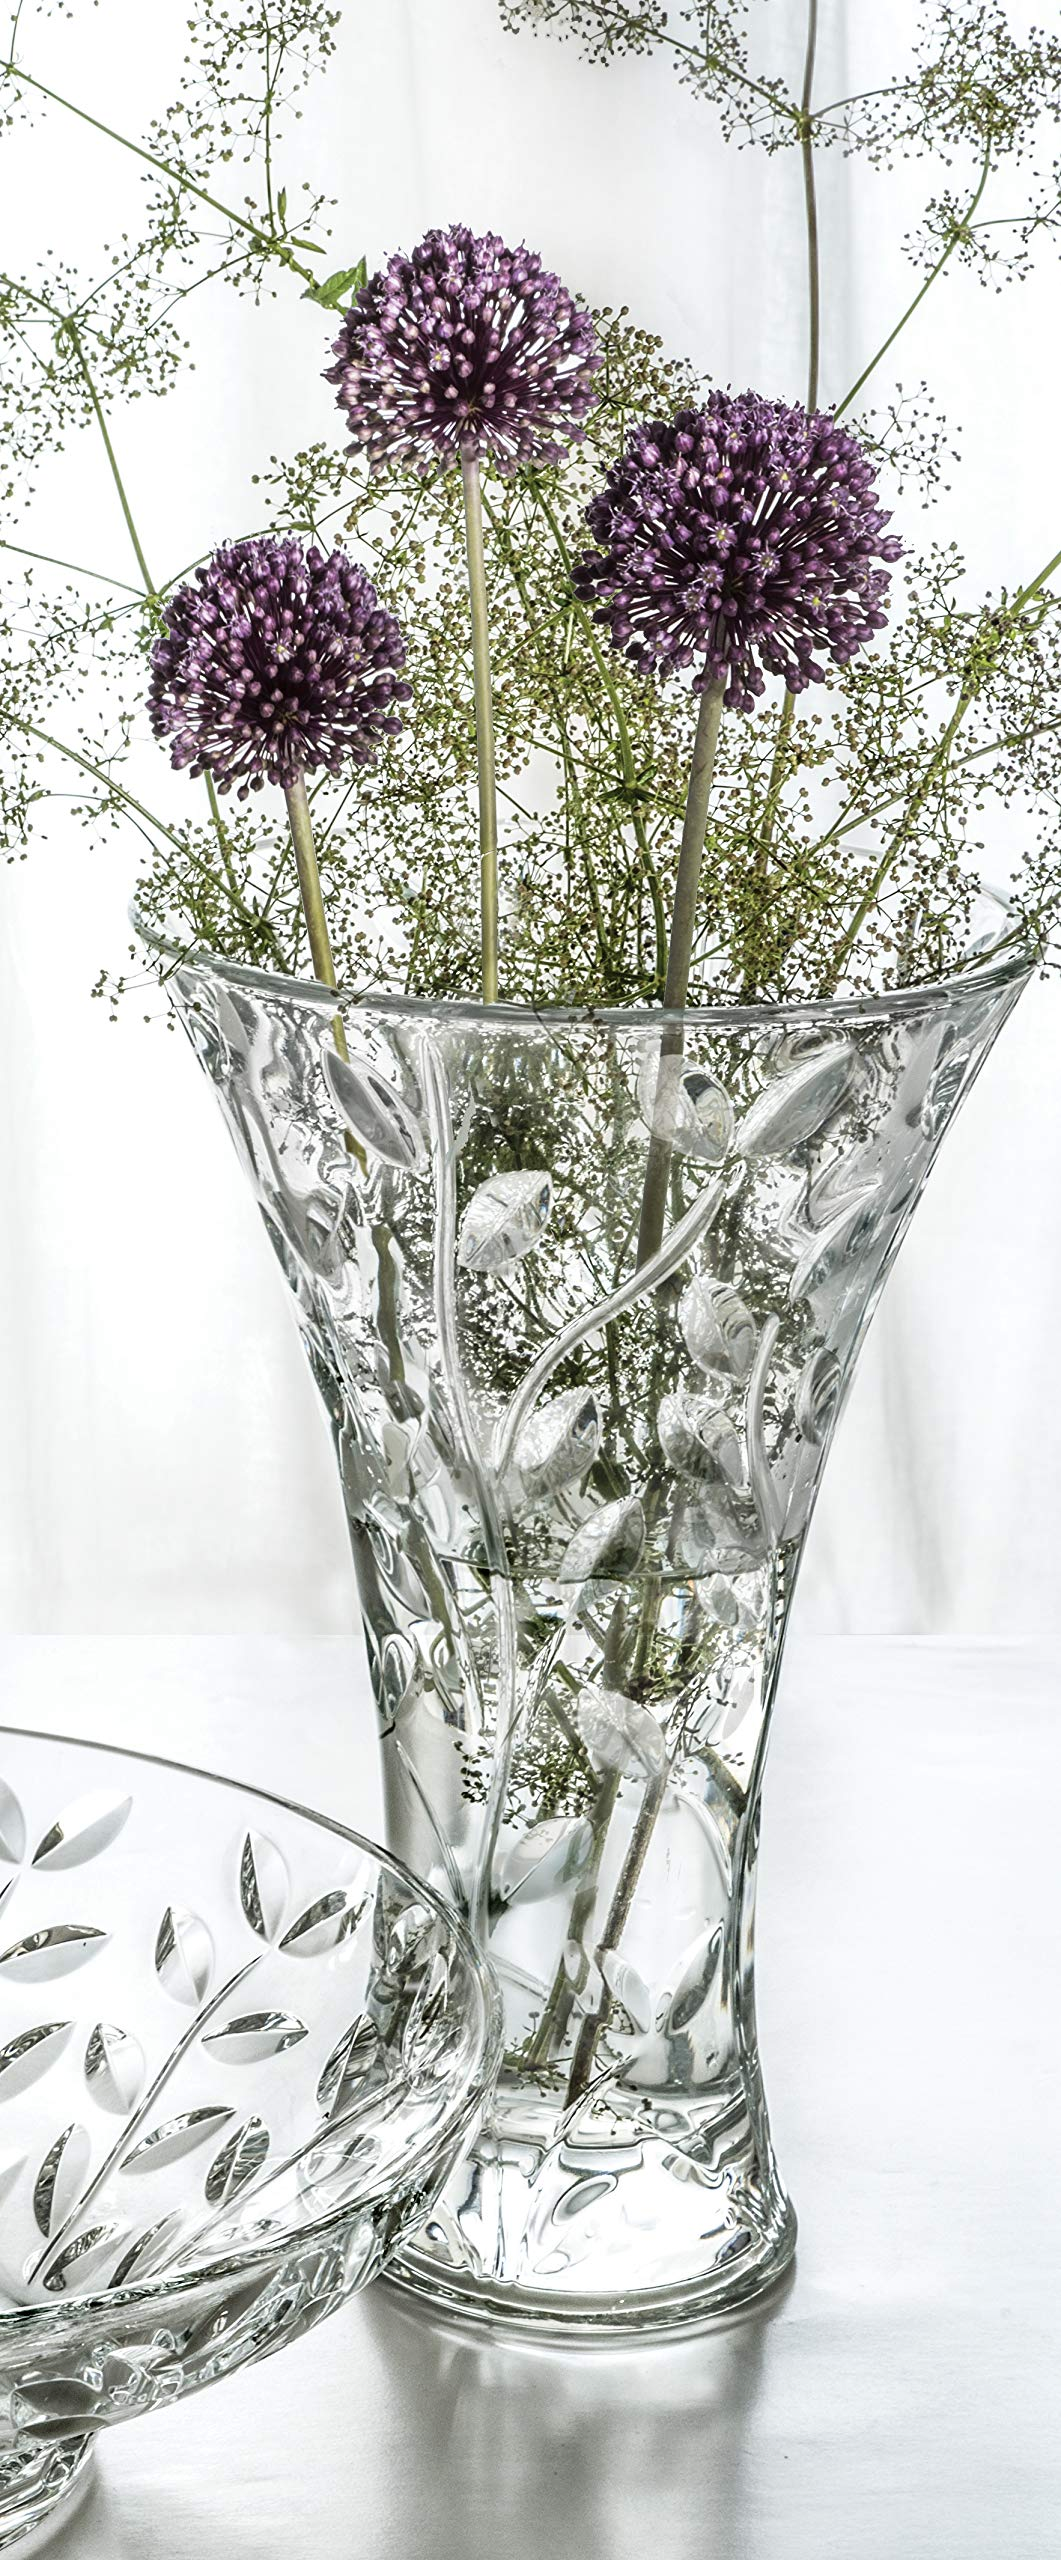 RCR Crystal ''LAURUS'' Vase 11'' - Made in Italy by RCR by Lorren Home Trends